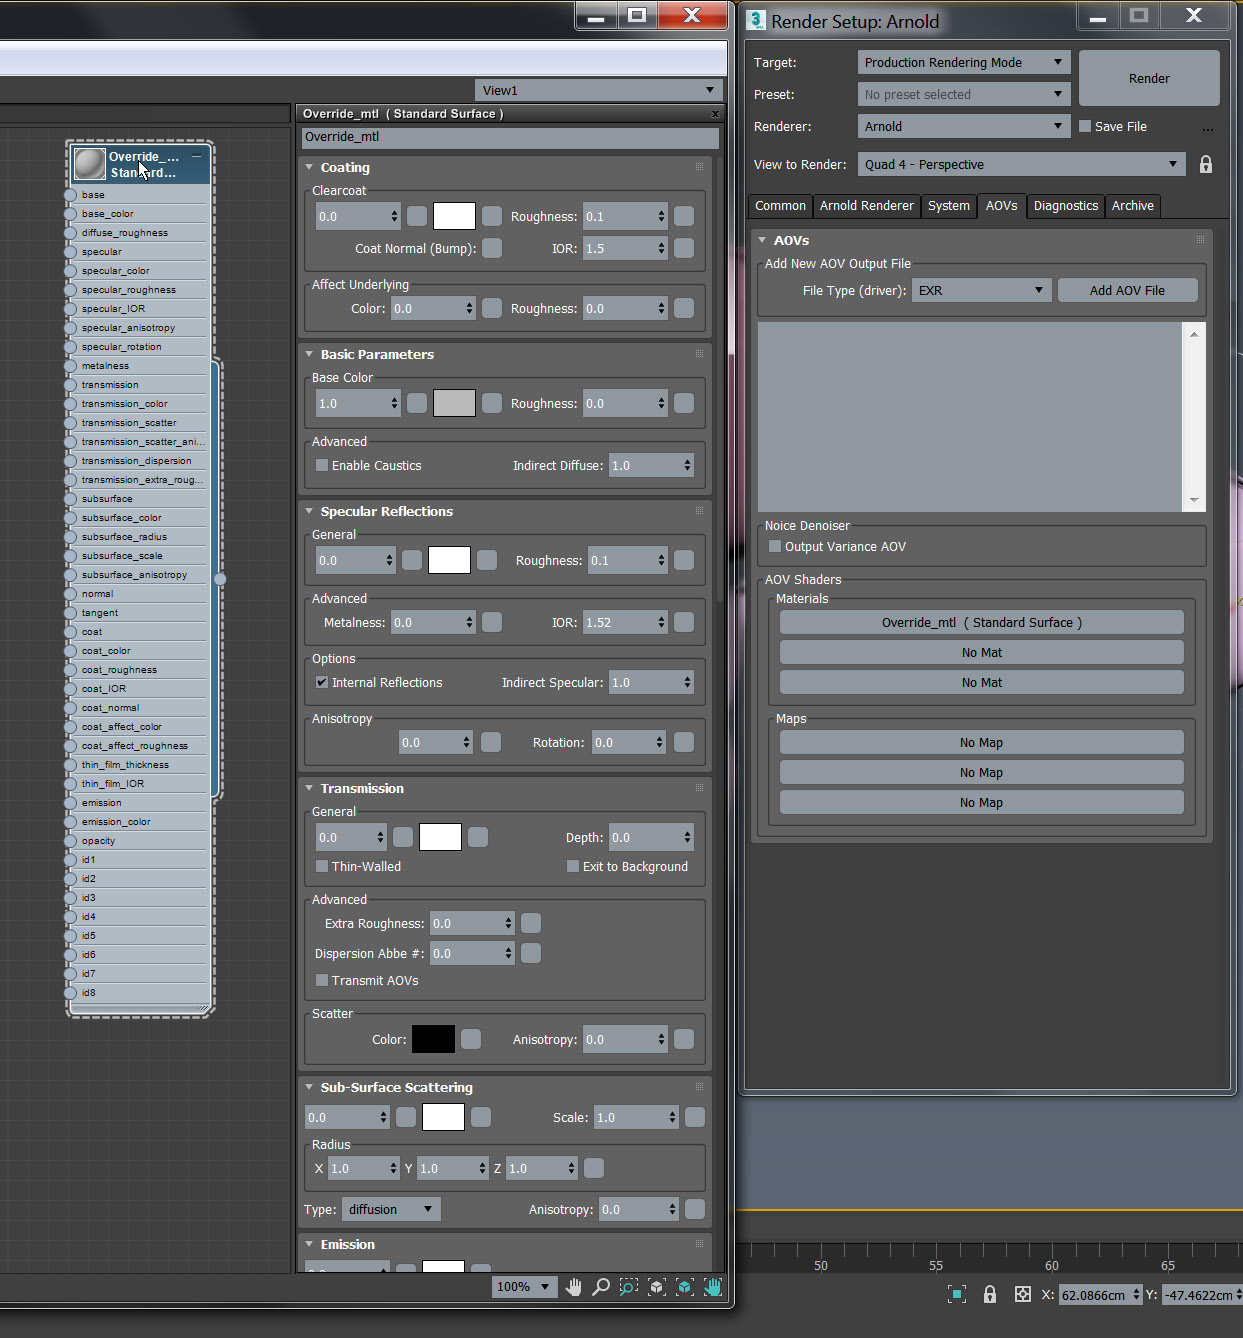 Override material for Arnold - veda3d com